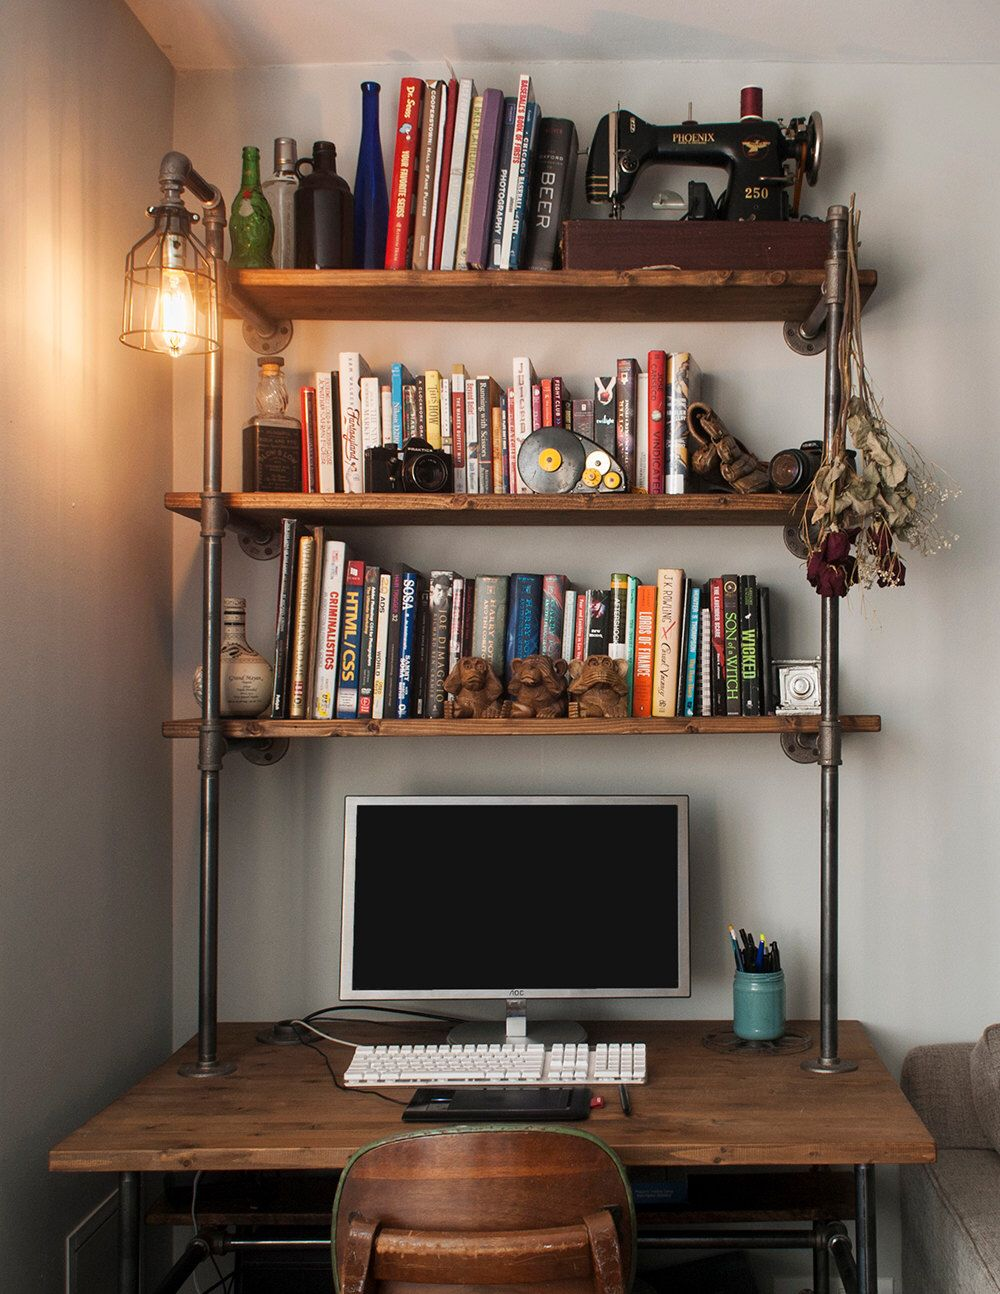 Pipe Desk With Shelving Unit And Built In Lamp By Designsbyb On Etsy Https